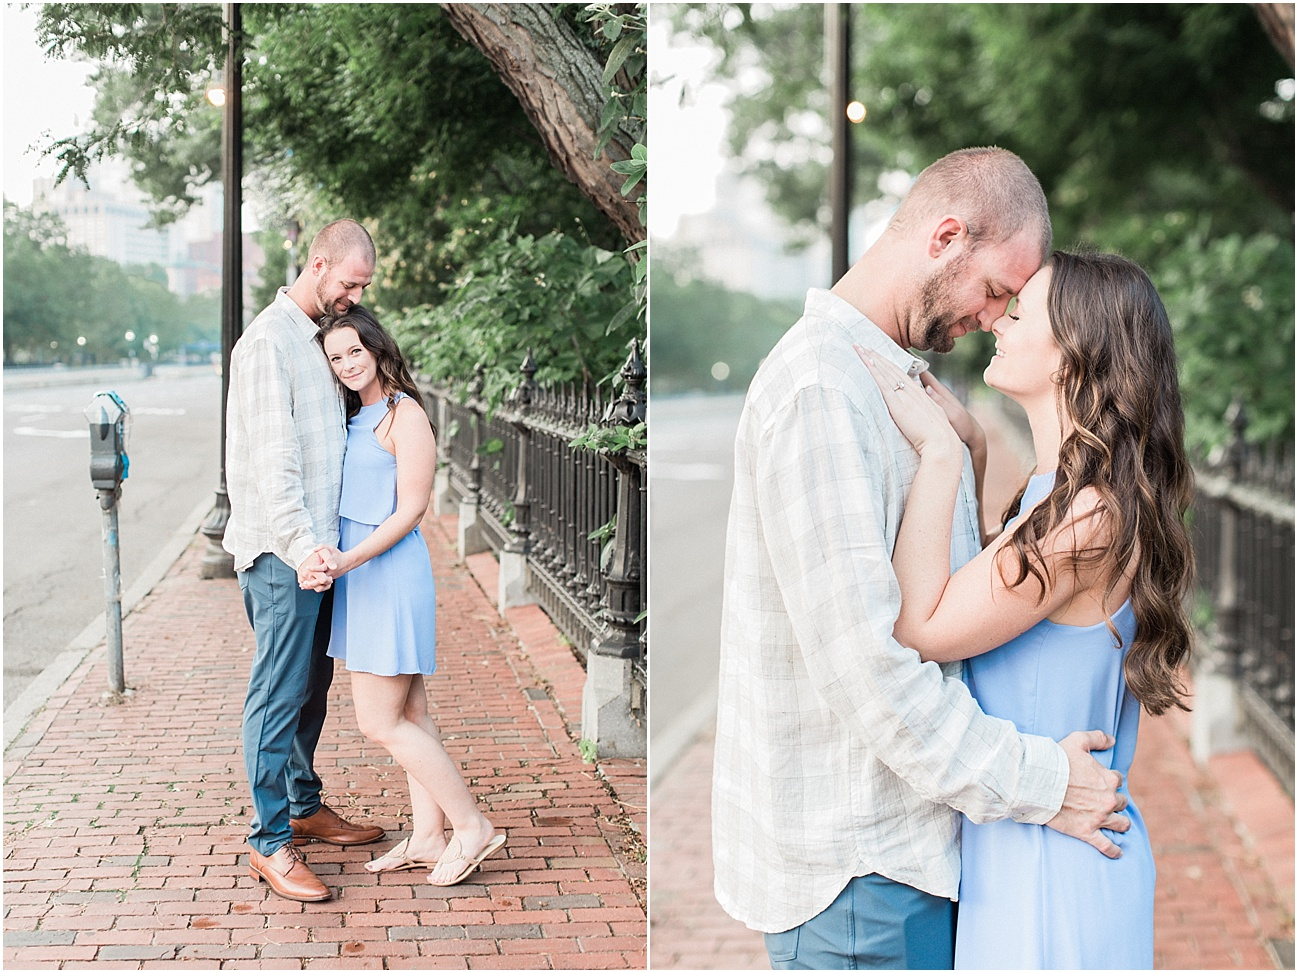 christina_frank_common_engagement_acorn_street_back_bay_cape_cod_boston_wedding_photographer_meredith_jane_photography_photo_0703.jpg